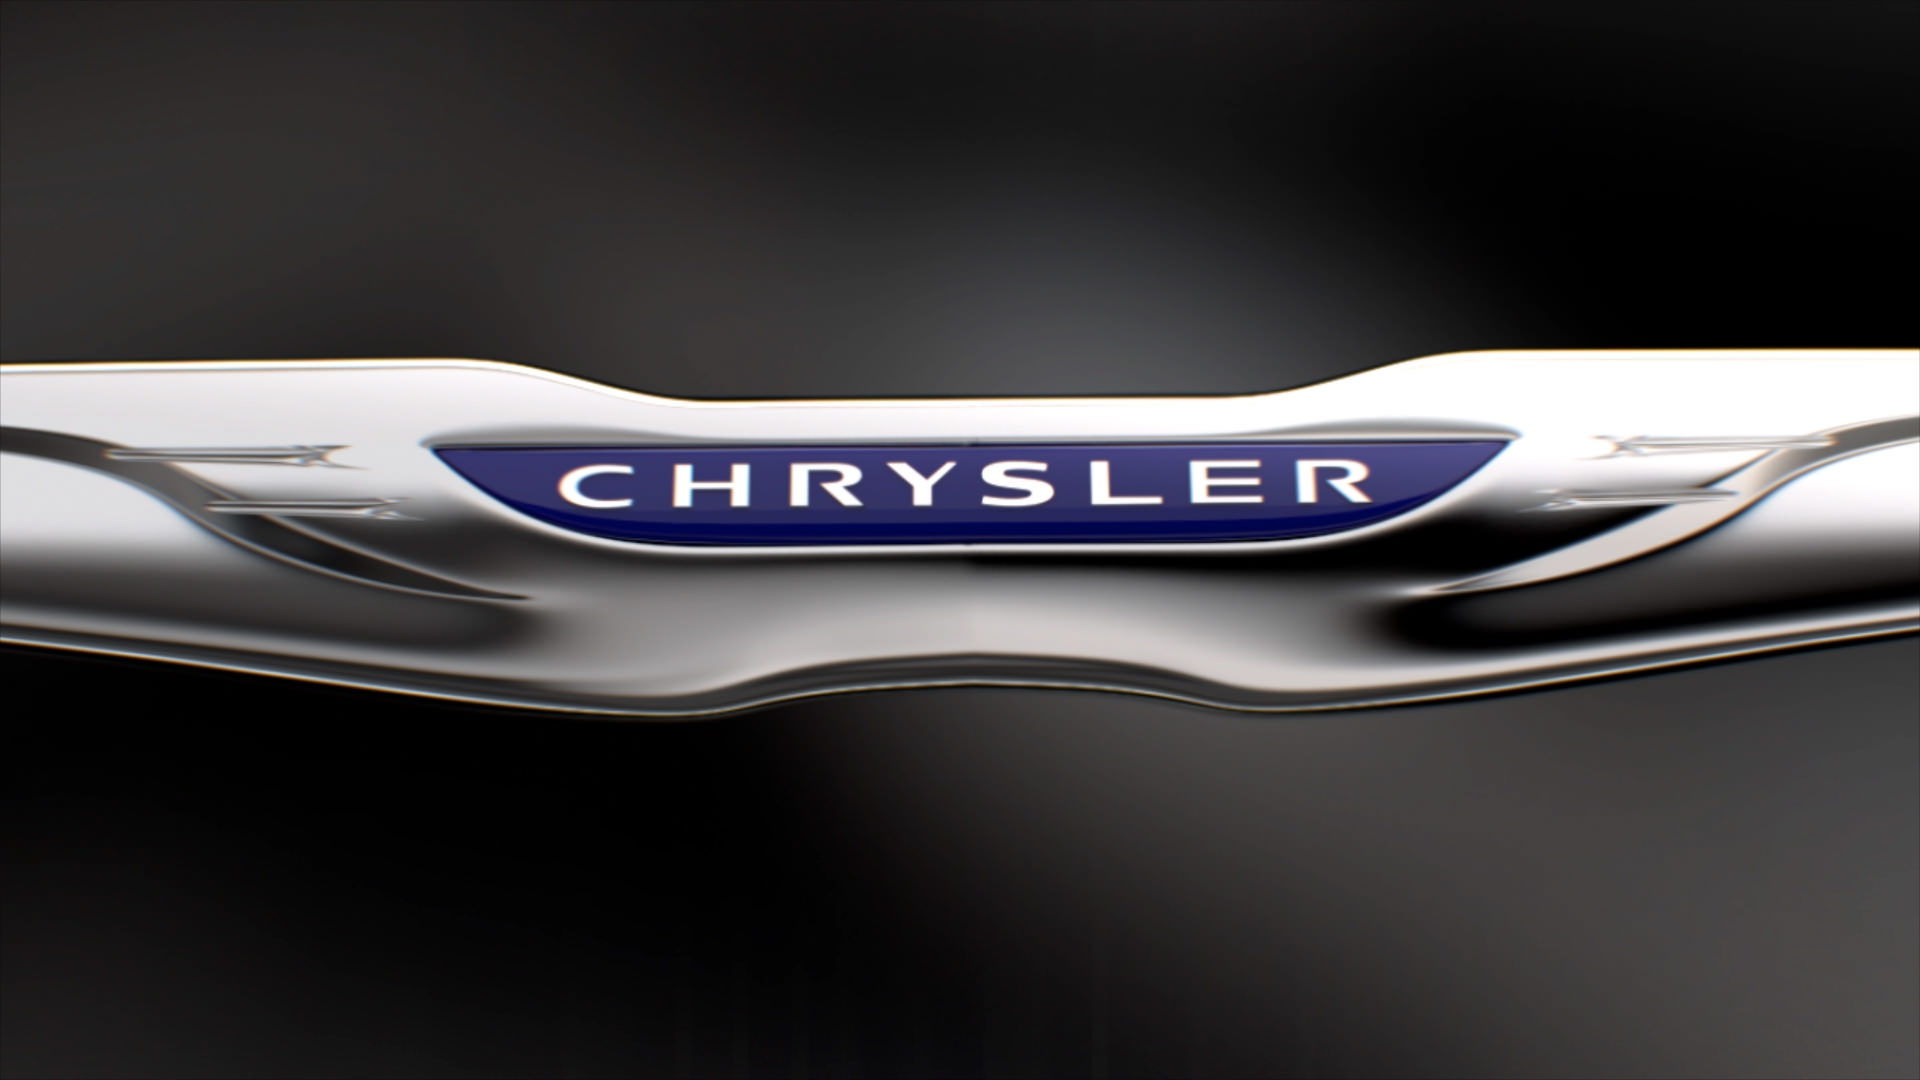 Chrysler Symbol